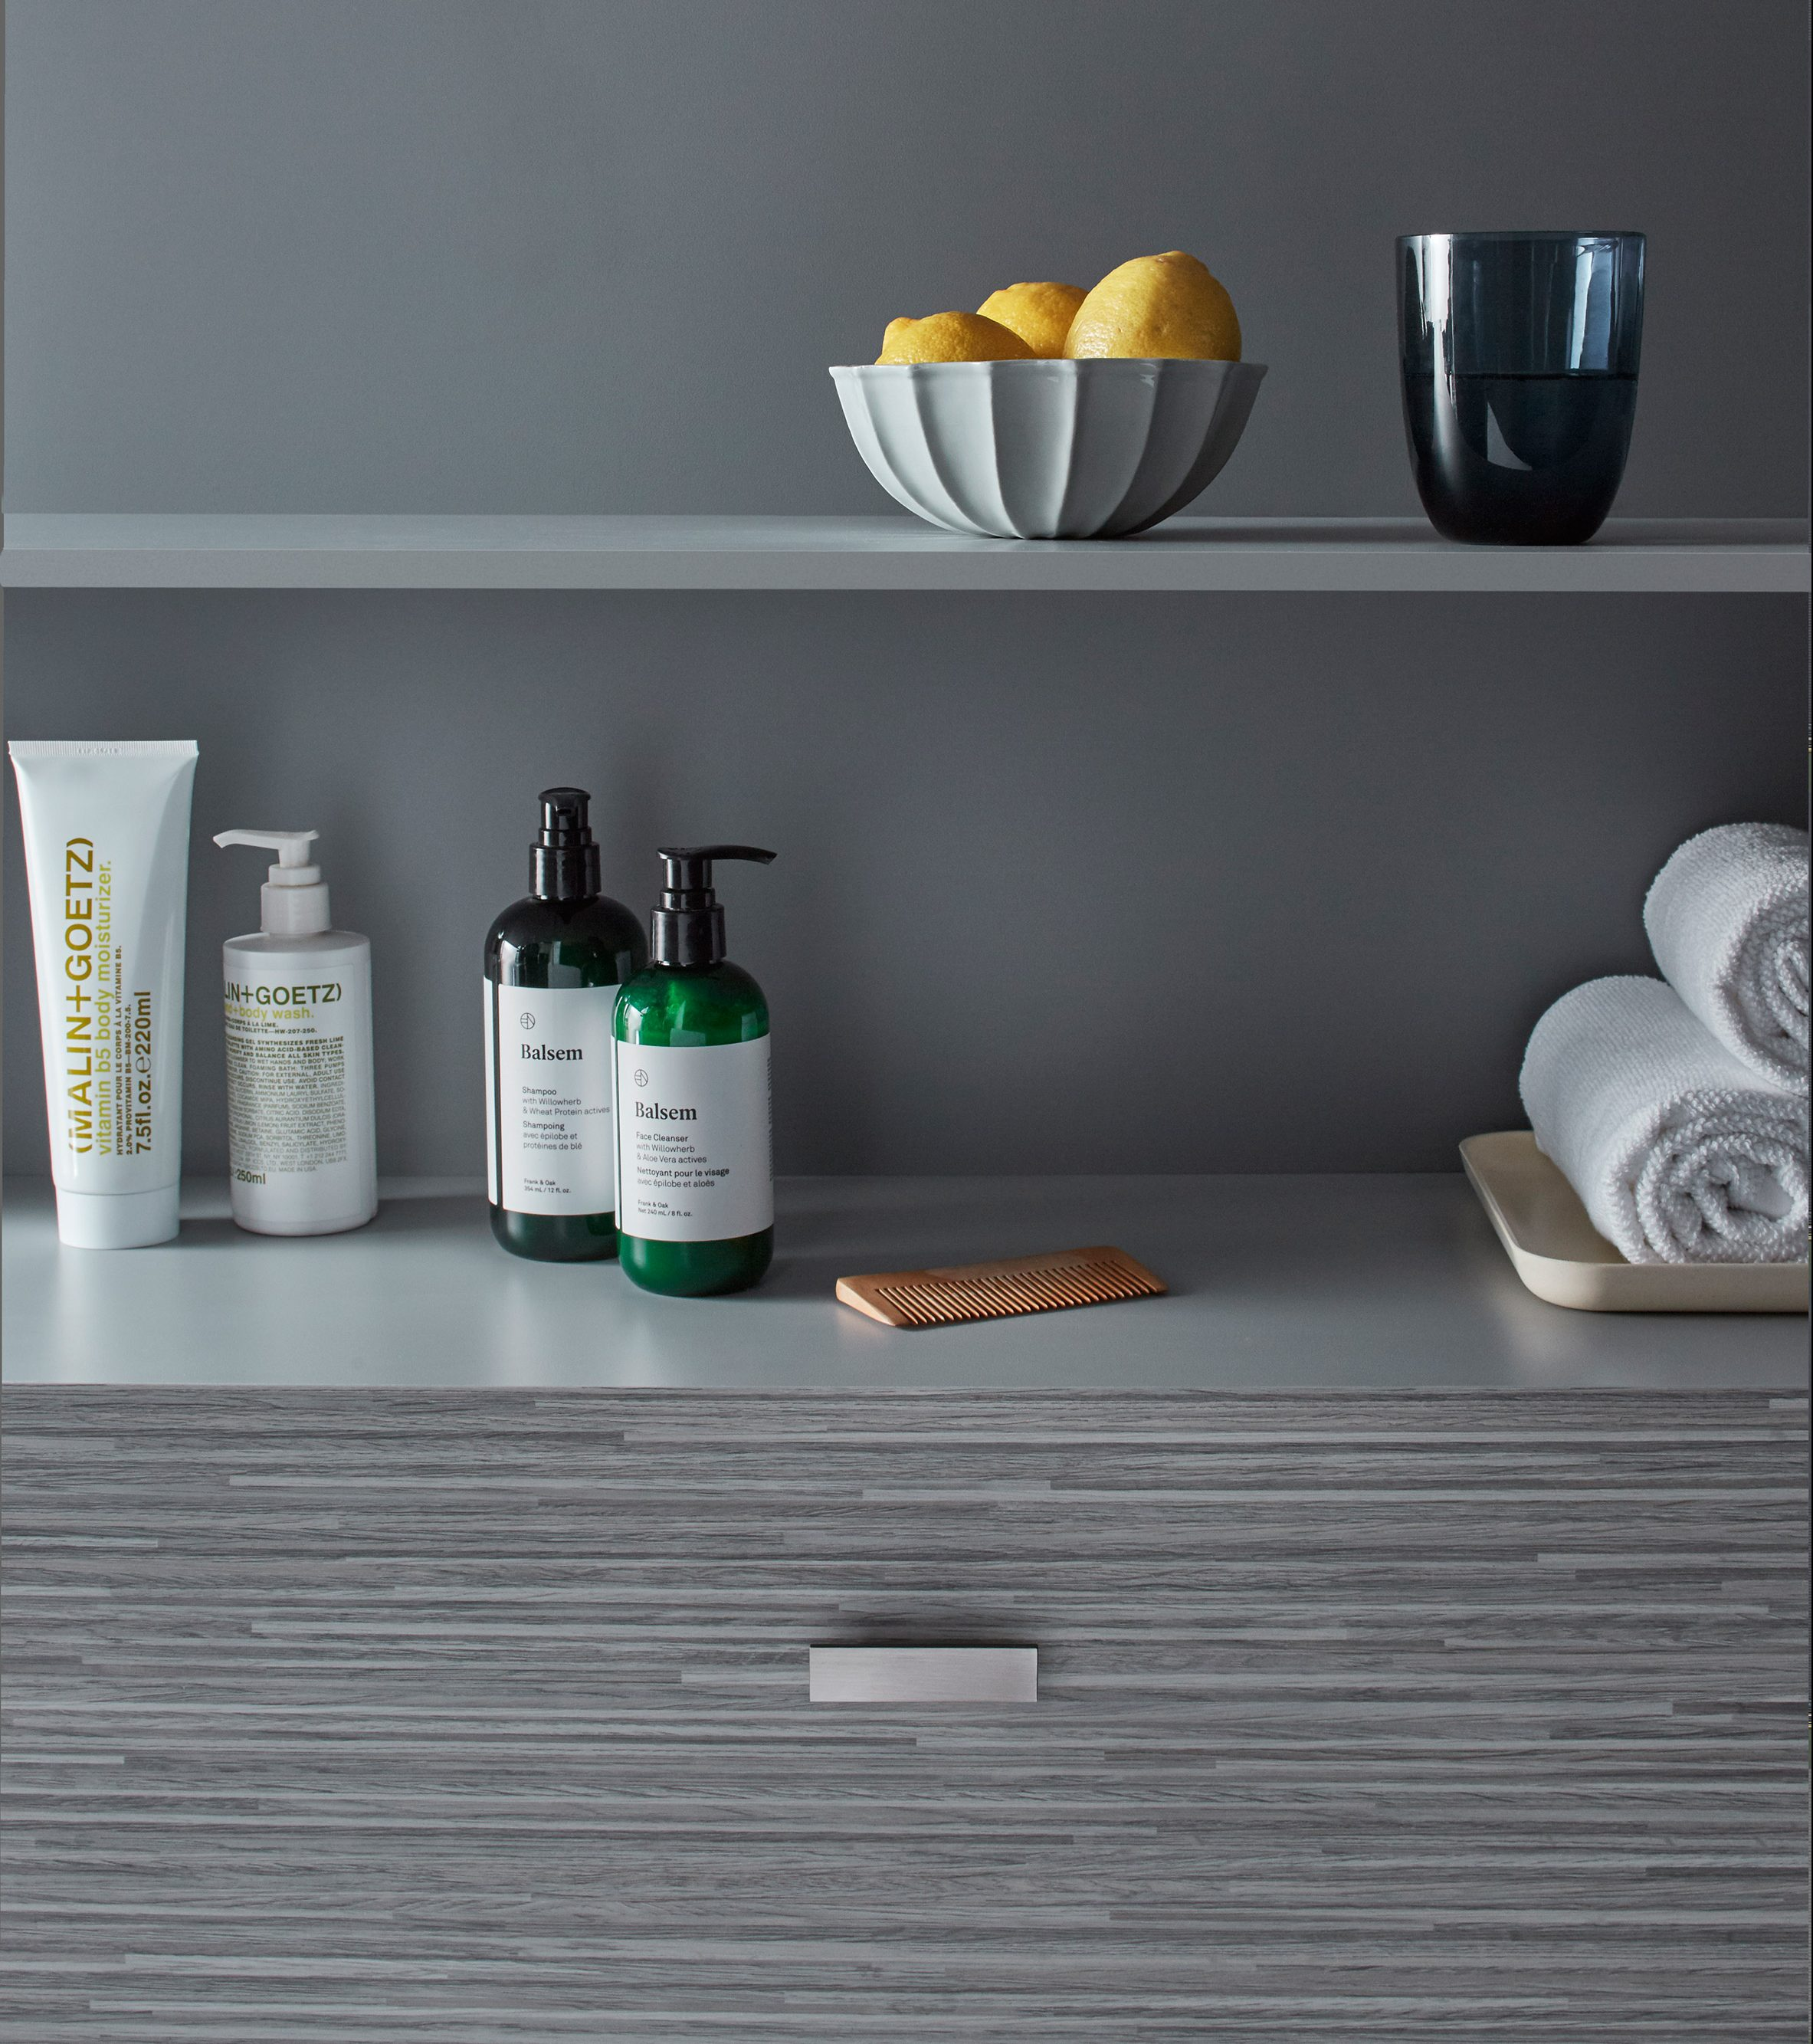 Wilsonart adds neutral tones and textures to its Solicor Laminate surfaces